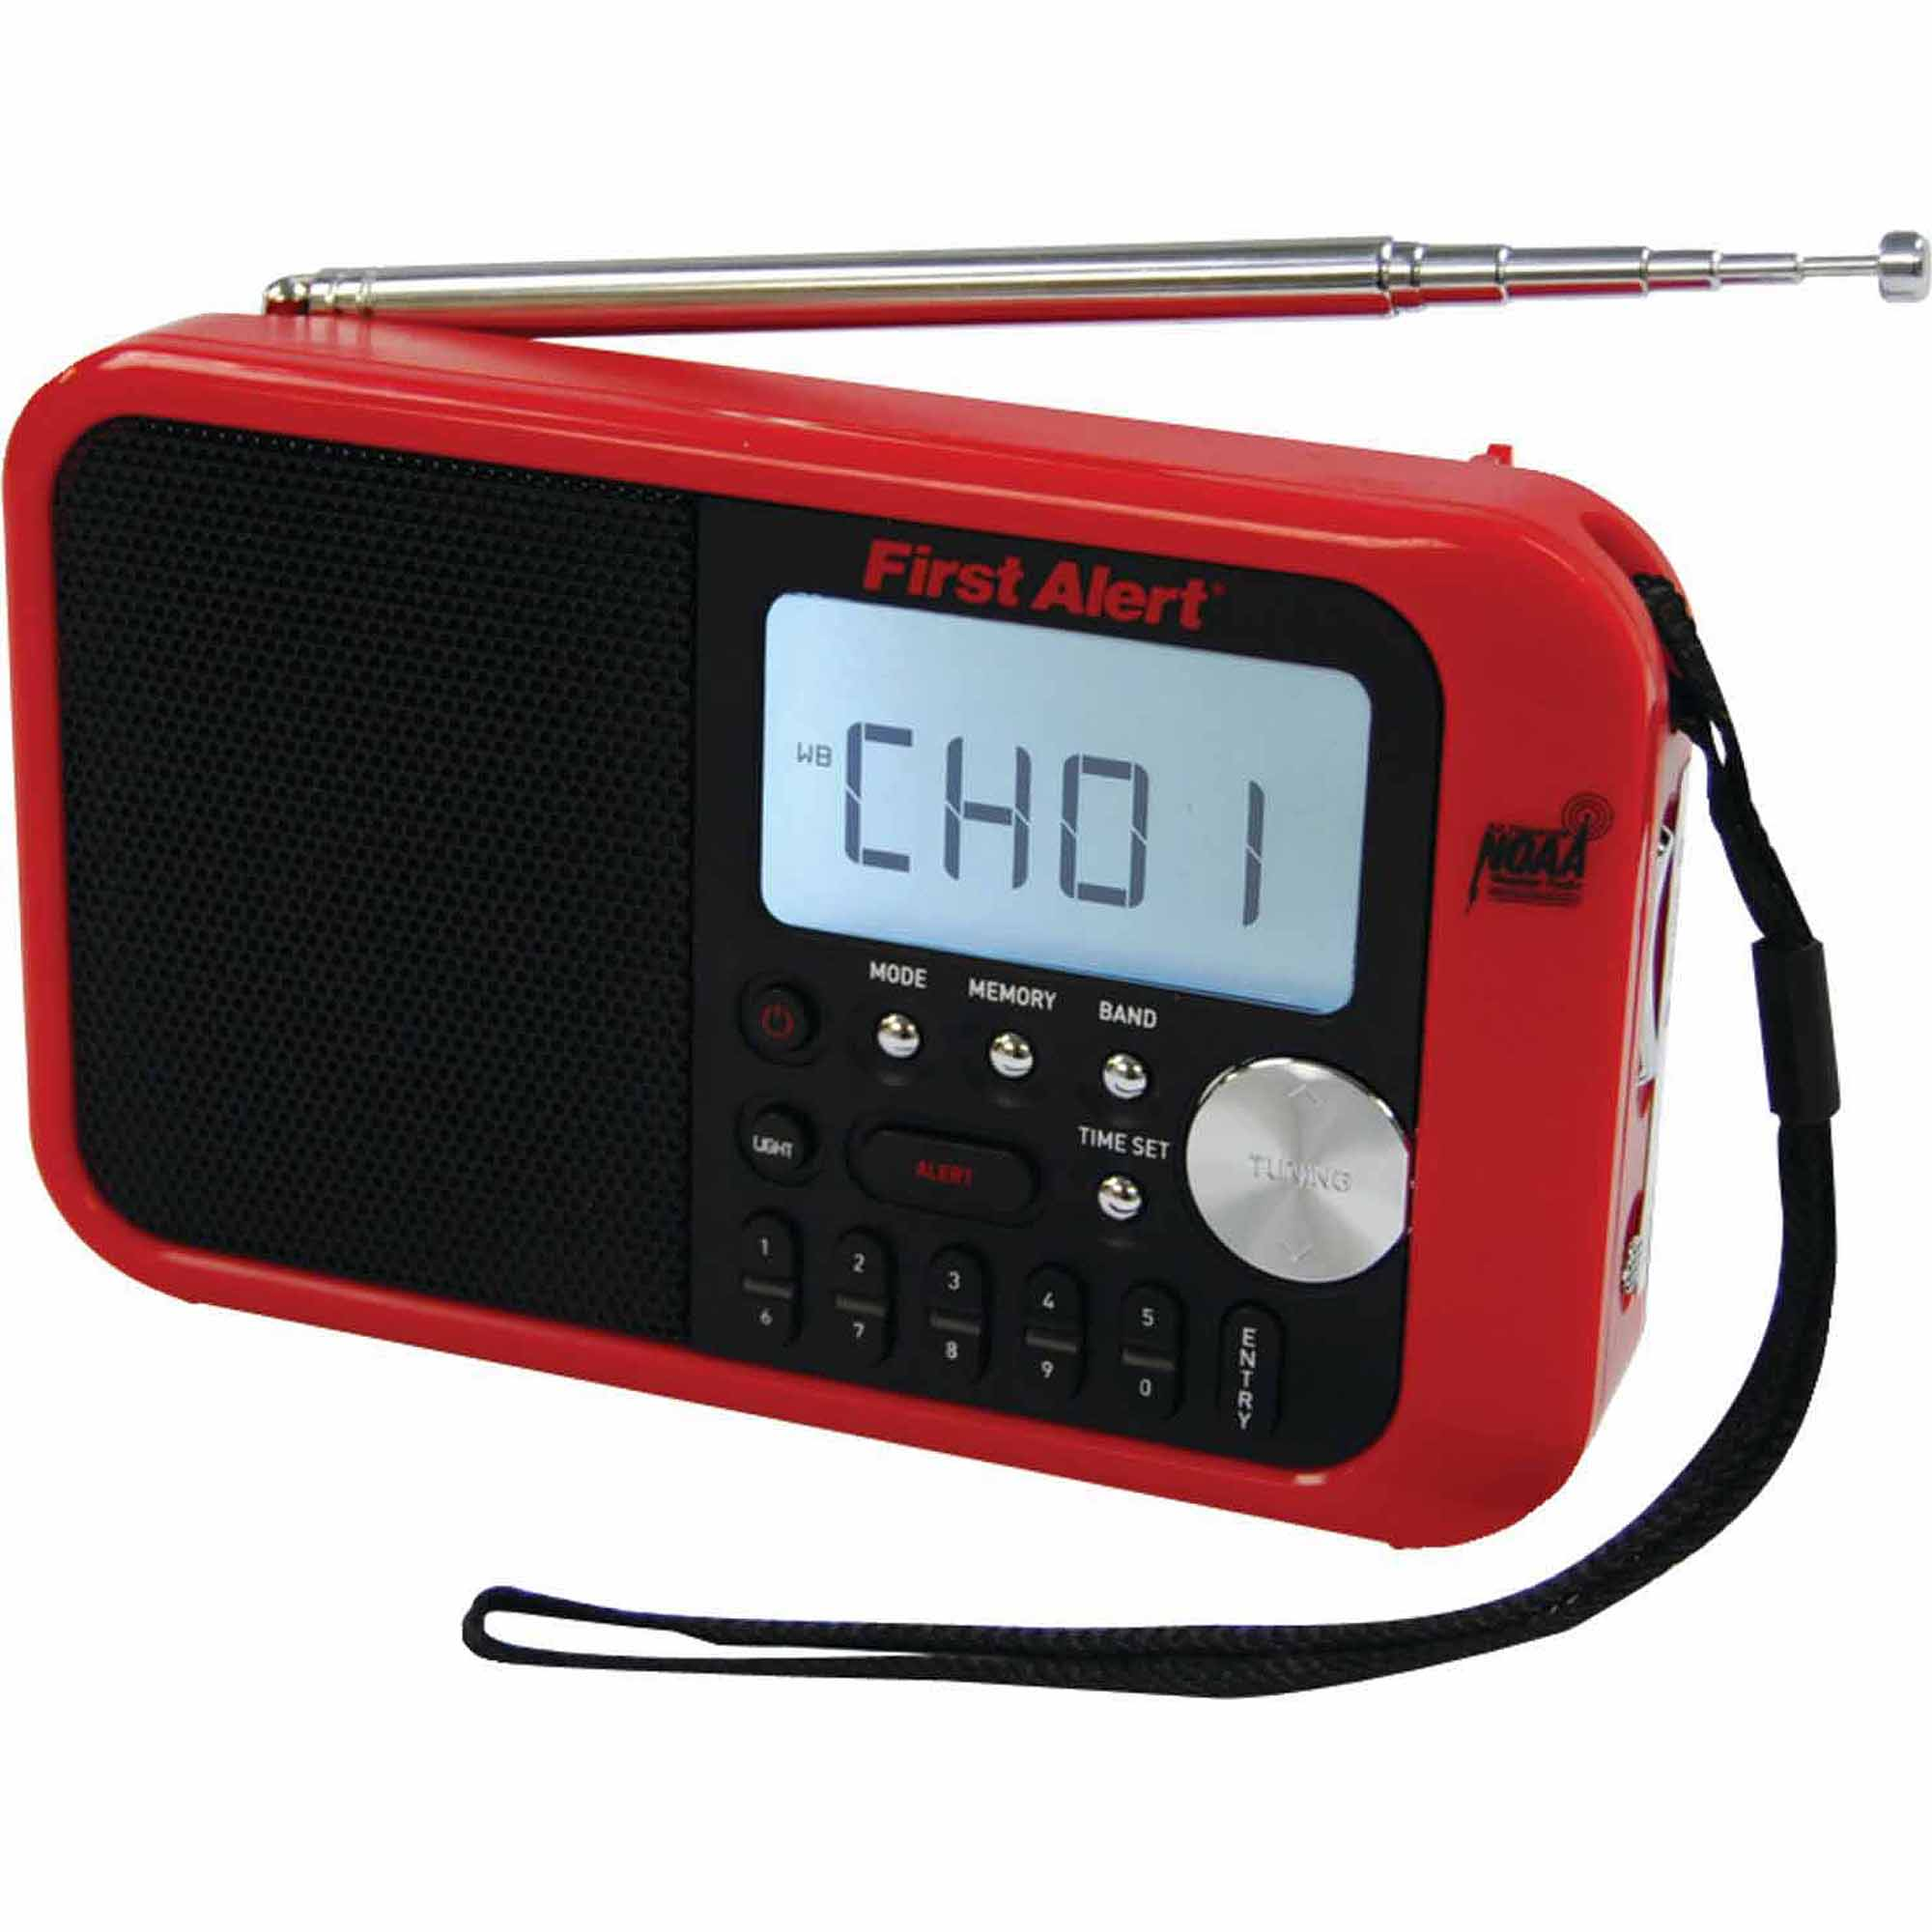 First Alert FA-1100 Digital Tuning AM/FM Weather Band Radio